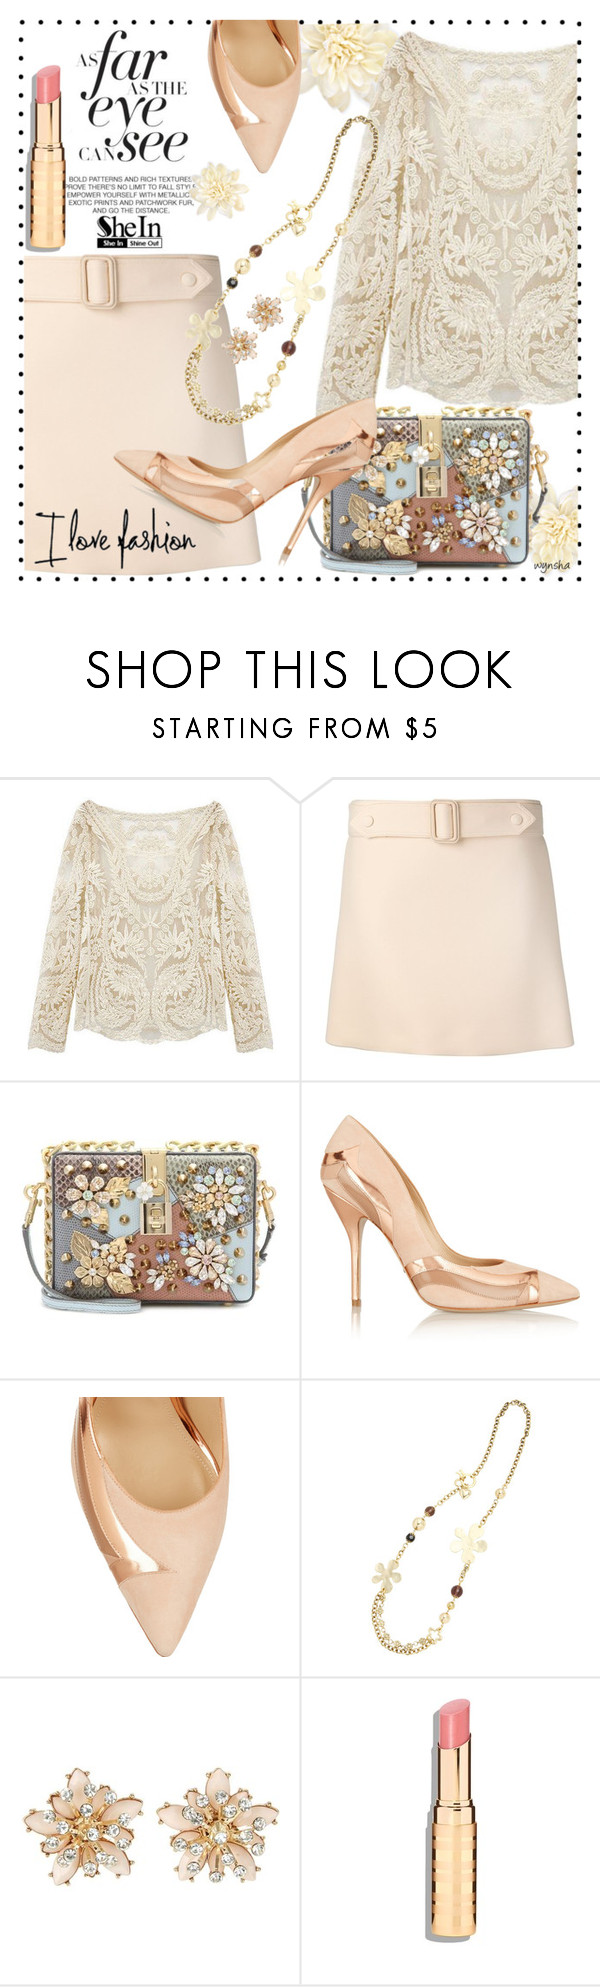 """I LOVE Fashion #1"" by wynsha ❤ liked on Polyvore featuring Johnny Loves Rosie, Calvin Klein Collection, Dolce&Gabbana, Paul Andrew, Orcival, women's clothing, women, female, woman and misses"